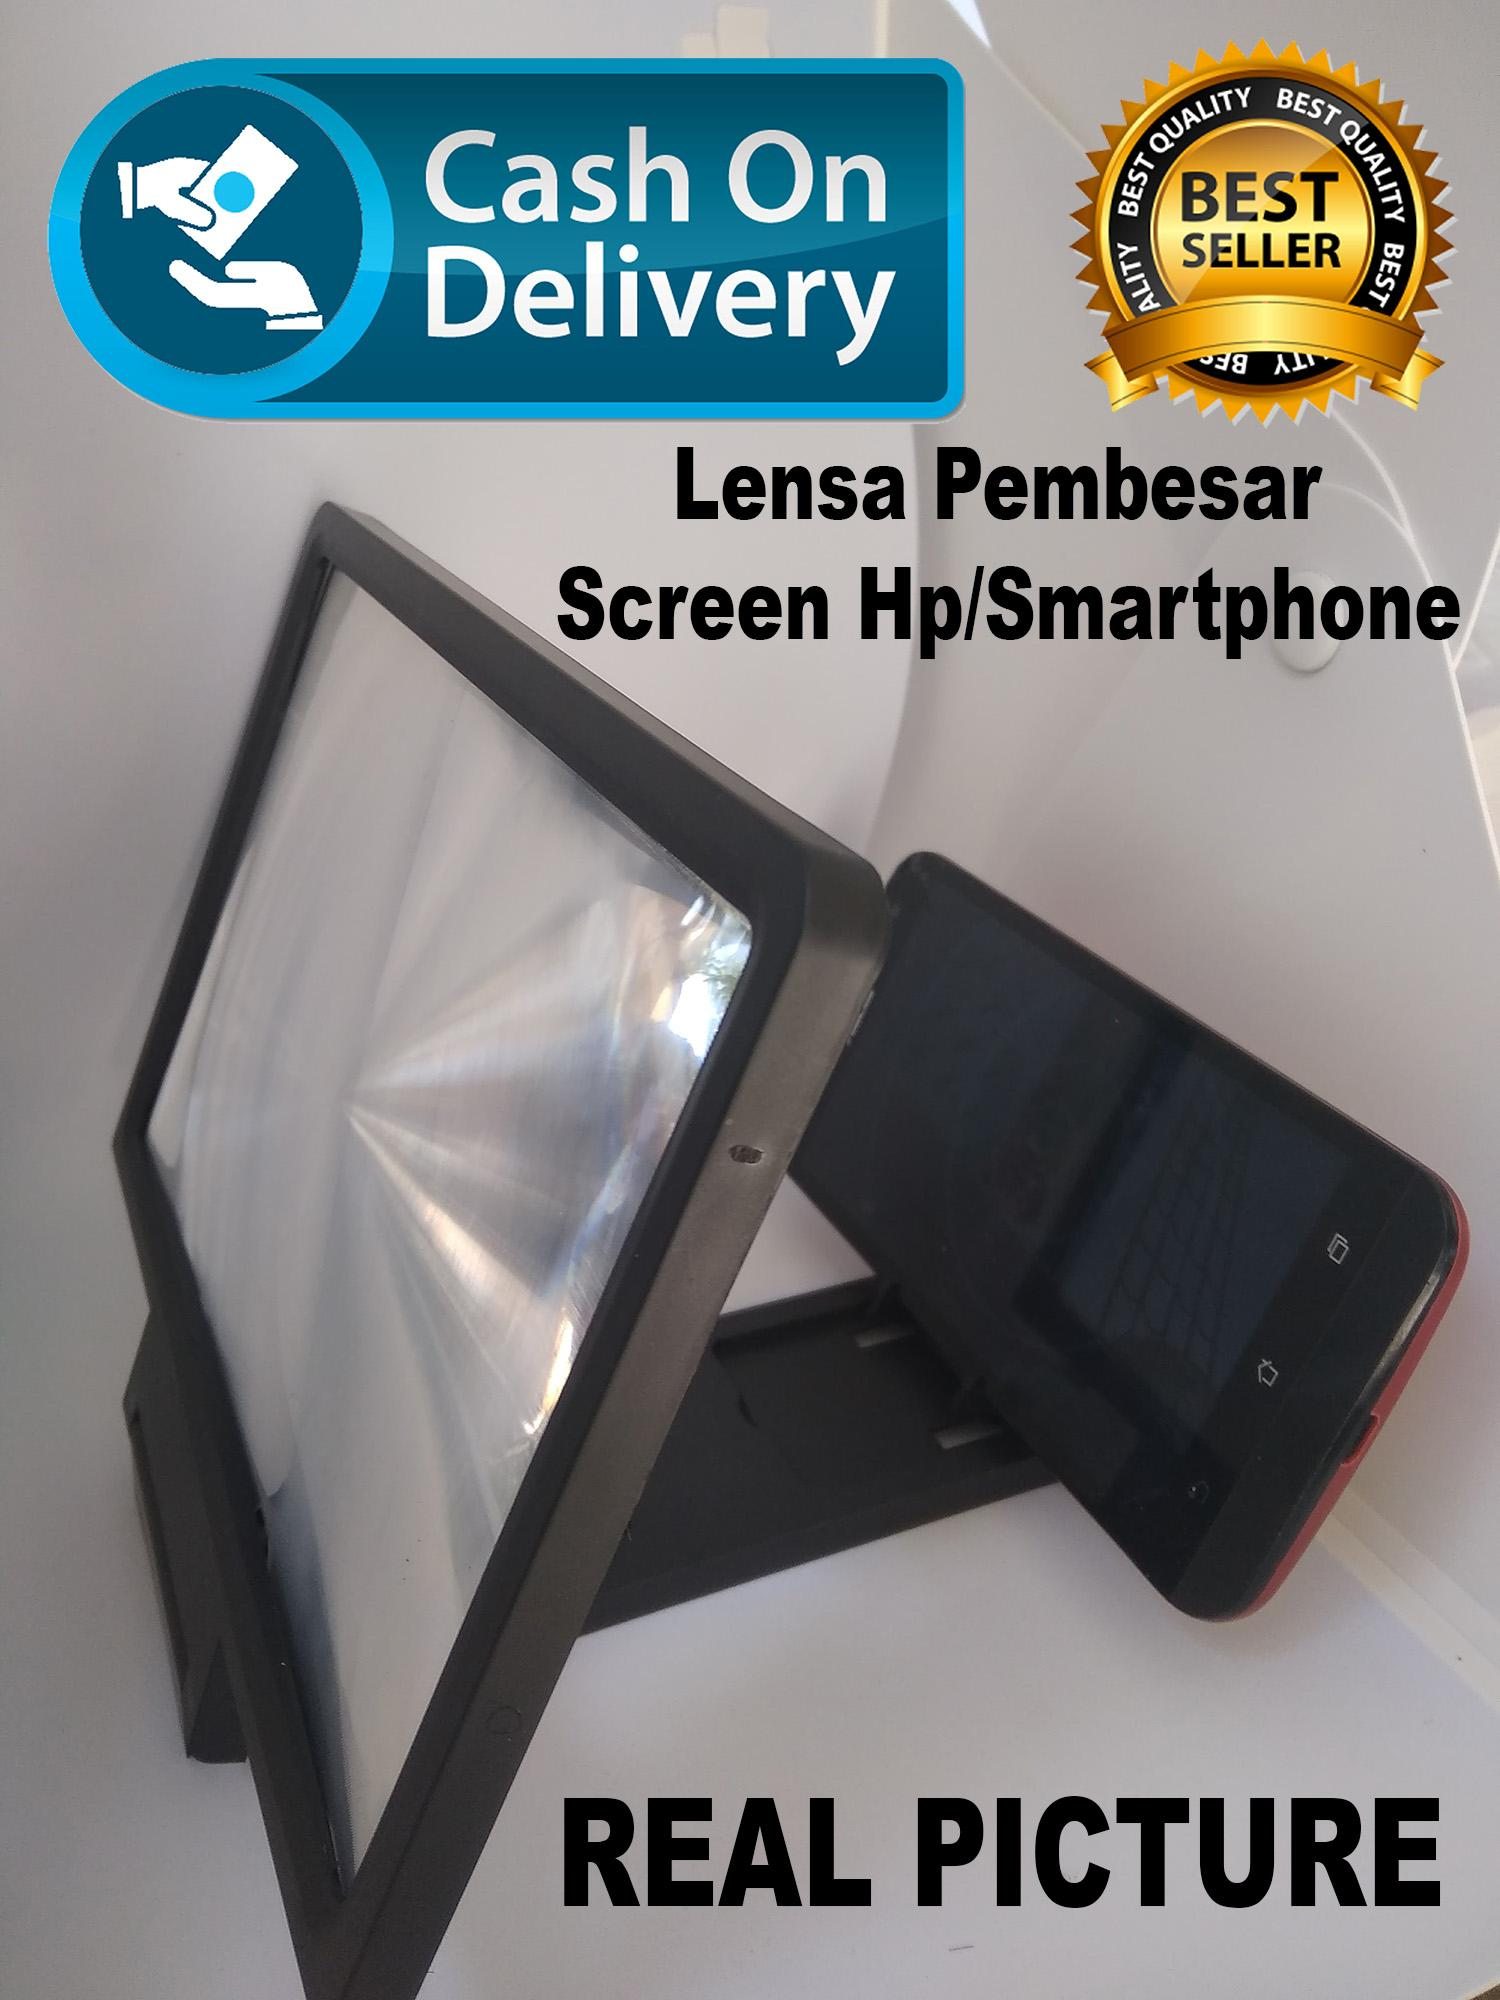 Kaca Pembesar Handphone HP/Lensa Pembesar Smartphone Kaca Pembesar 3D untuk Smartphone Enerlage Screen Mobile Phone Hp Android Handphone Enerlarged 3 Dimensi Reduce Eye Fatigue Desain Trendi Nonton Video Film Material Kaca Acrylic Gambar Jelas Tajam Ringa